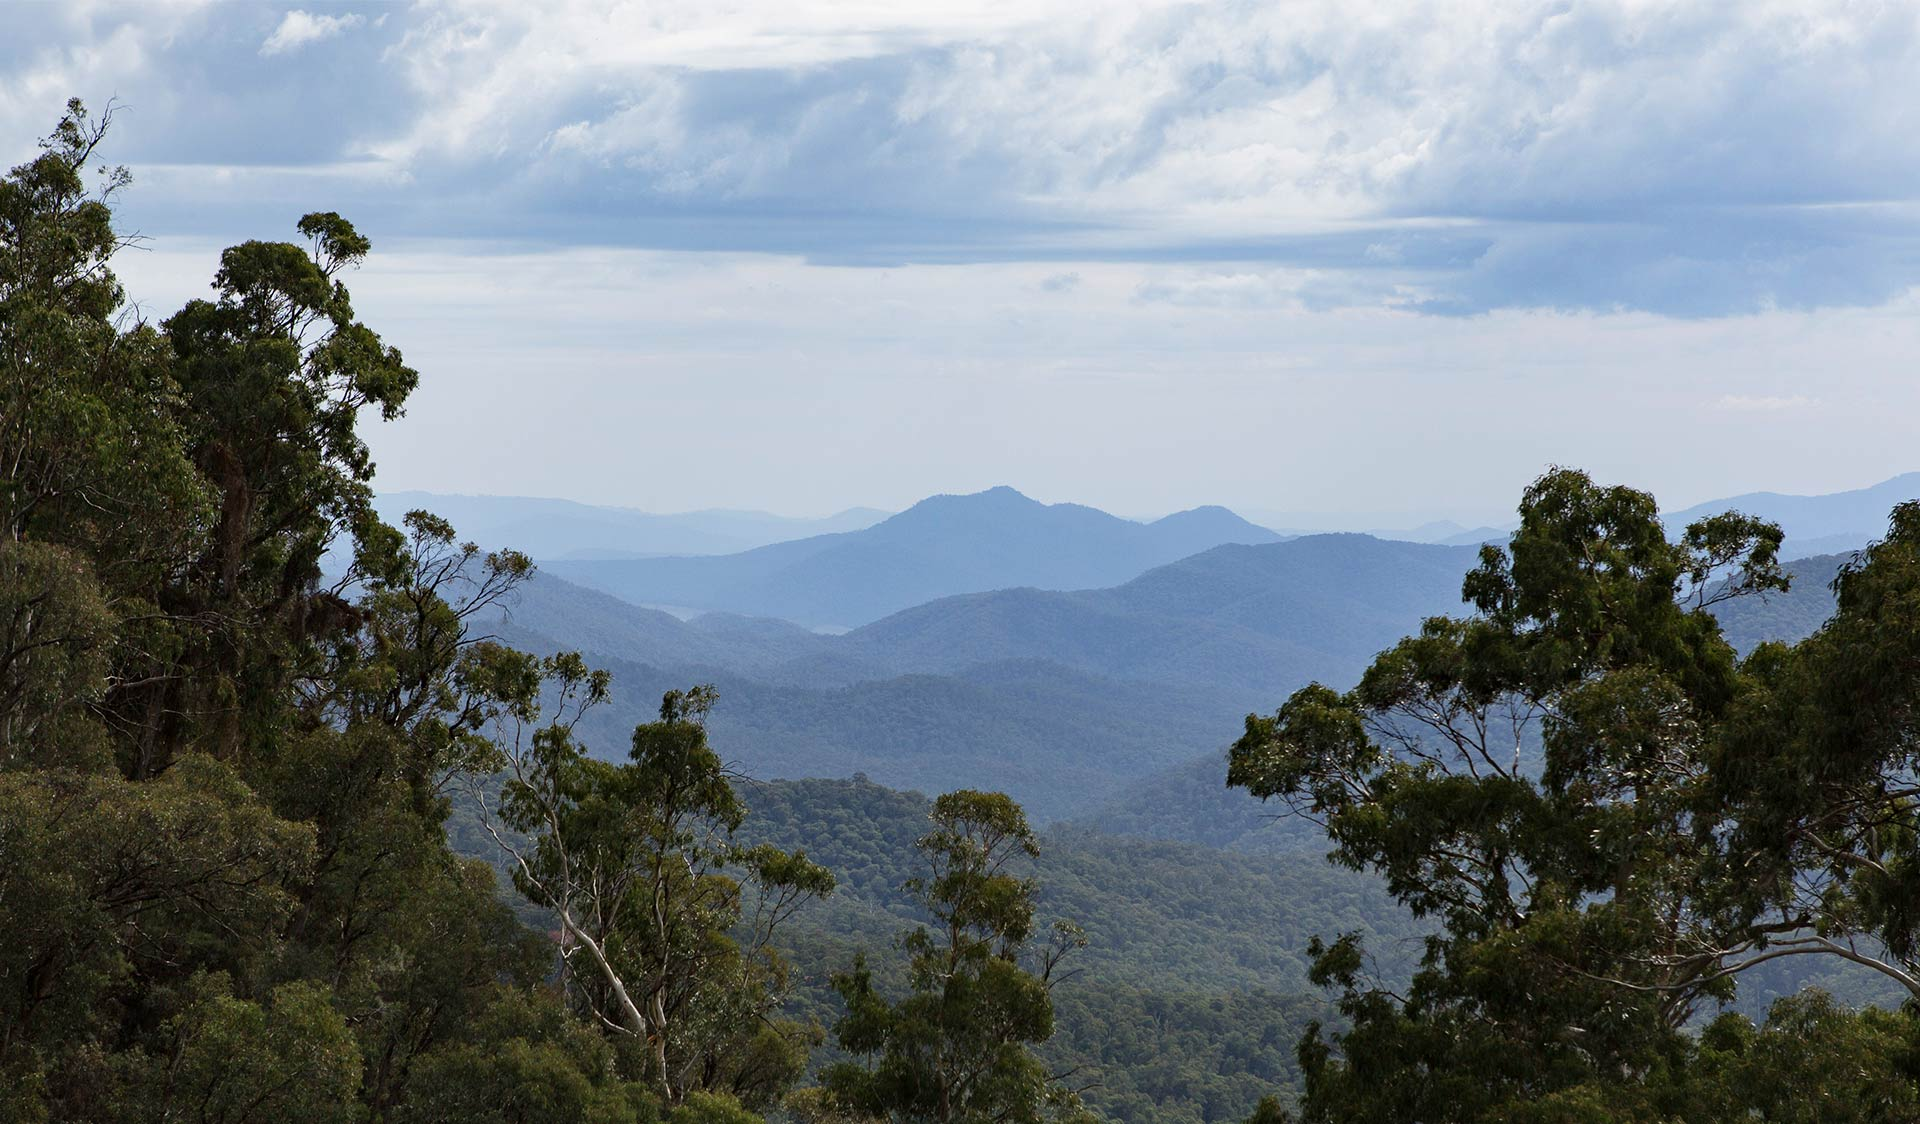 The view of Mt Buffalo from the summit of Mt Cobbler near the headwaters of the Dandongadale River.